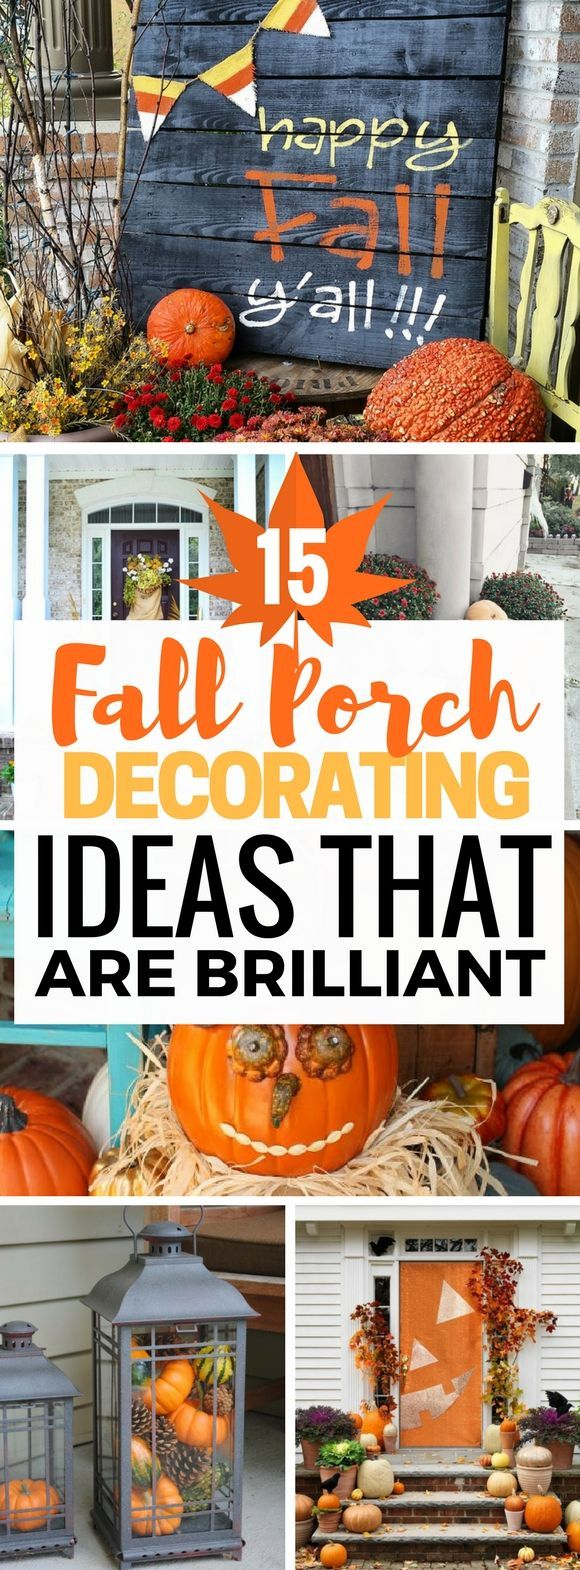 Is the Fall your favorite season too? Decorating the home with diy pumpkin crafts and fake leaves are so much fun and the home decor always turns out looking amazing! I can't wait to try out these fantastic diy fall porch decorating ideas that are so easy and cheap. You're going to LOVE this one. I promise!